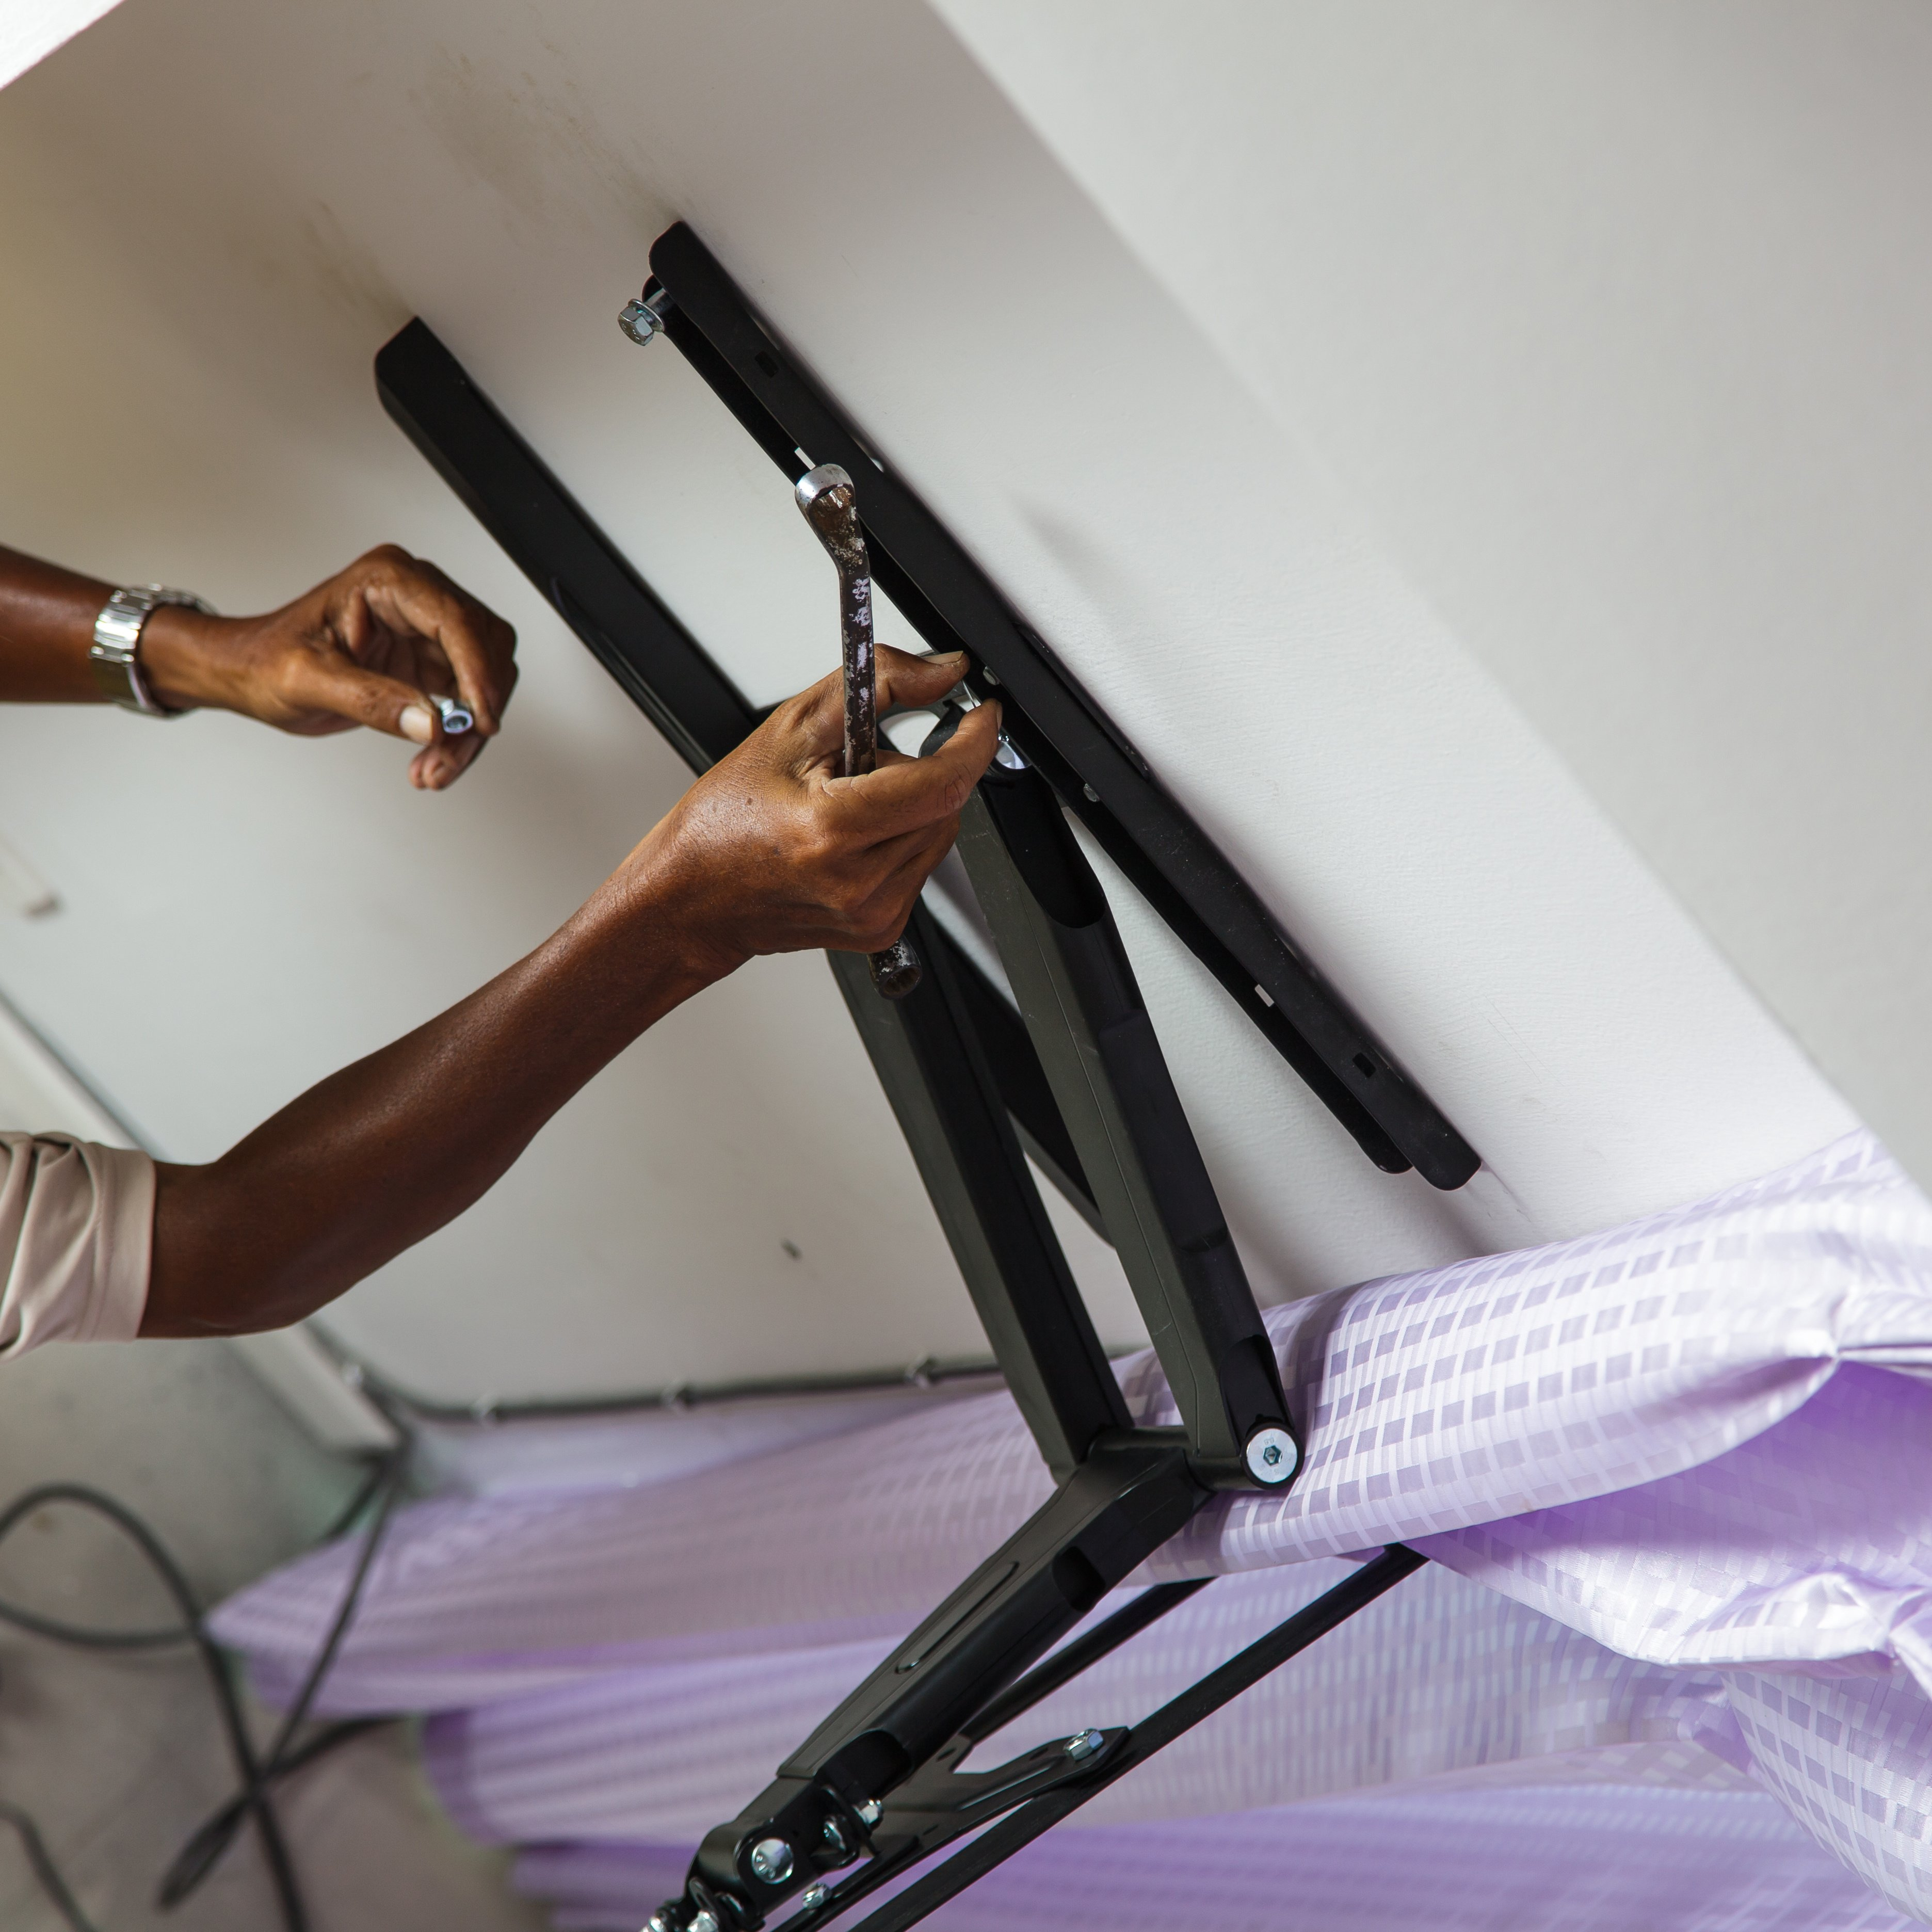 Mounting a T.V.